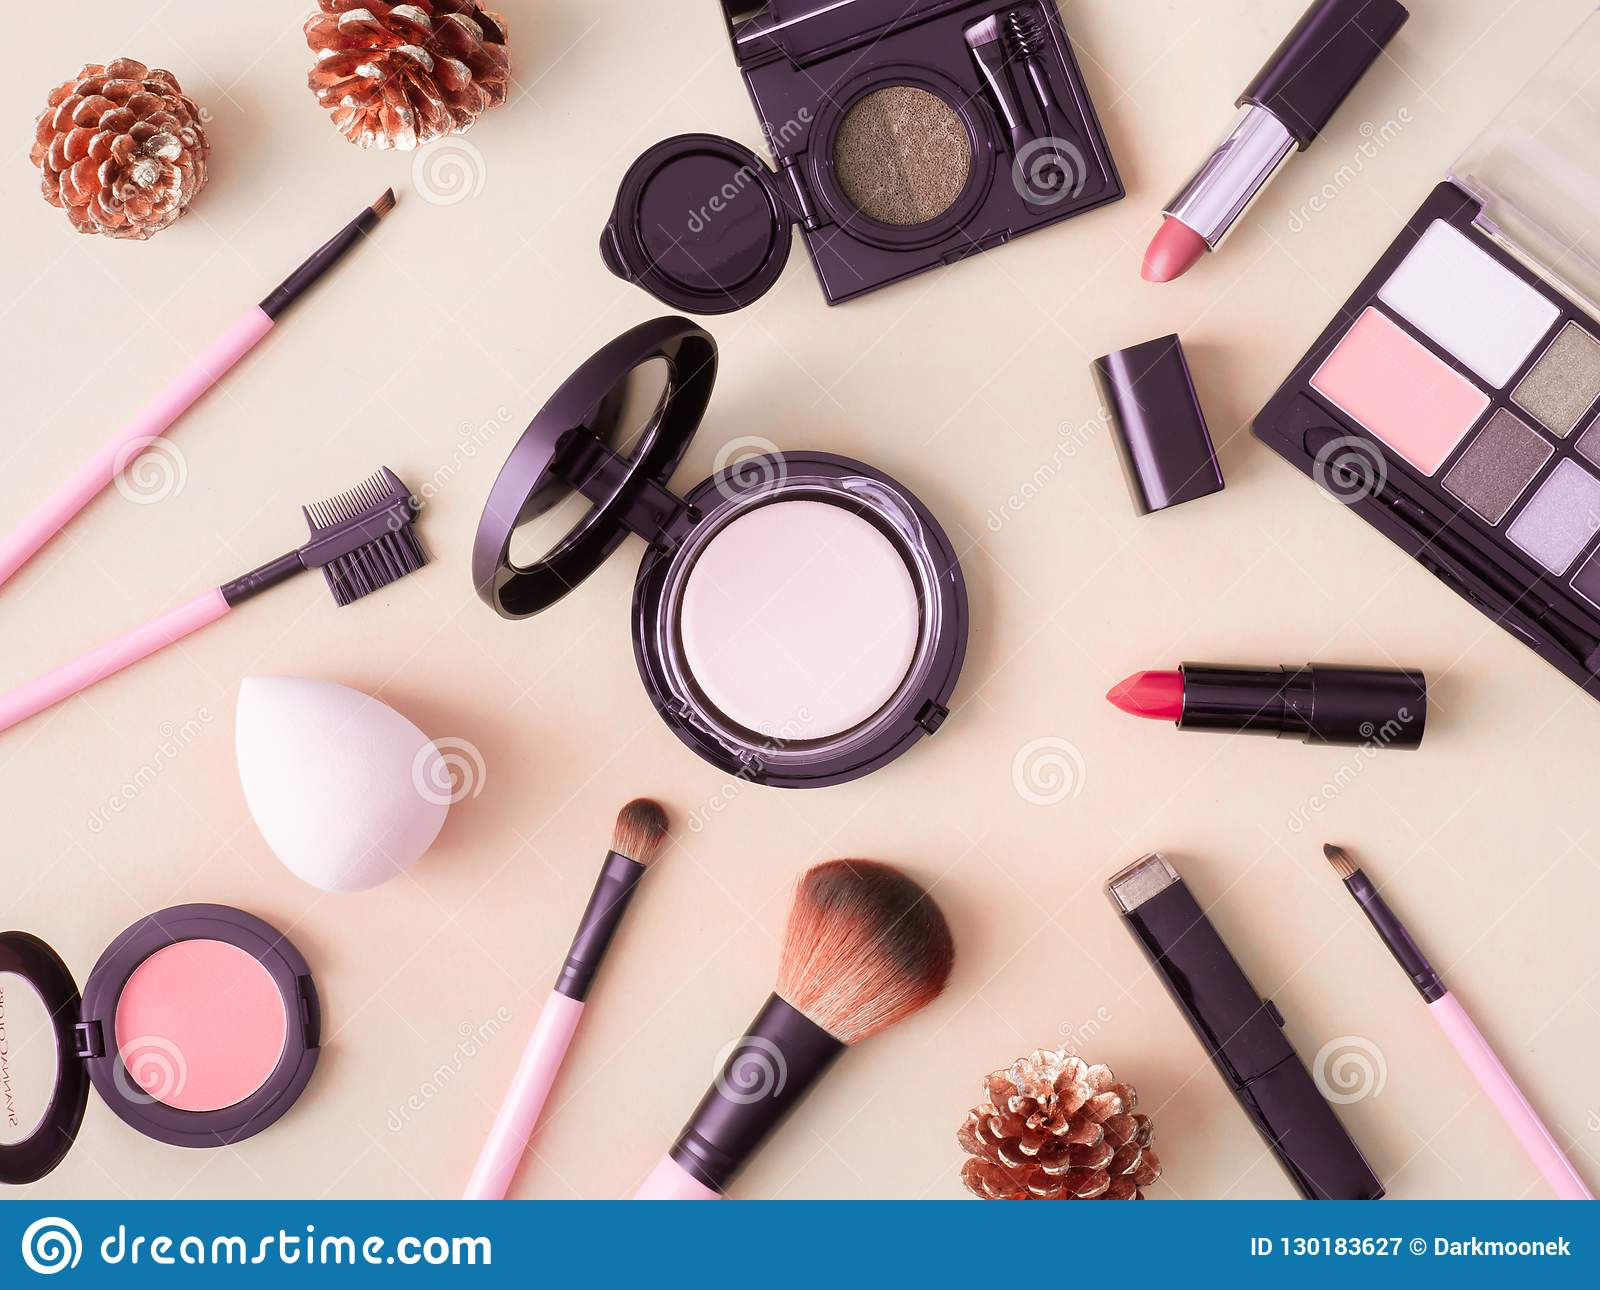 Cosmetics concept with lipstick, makeup products, Eyeshadow Palette, powder on cream color table background.